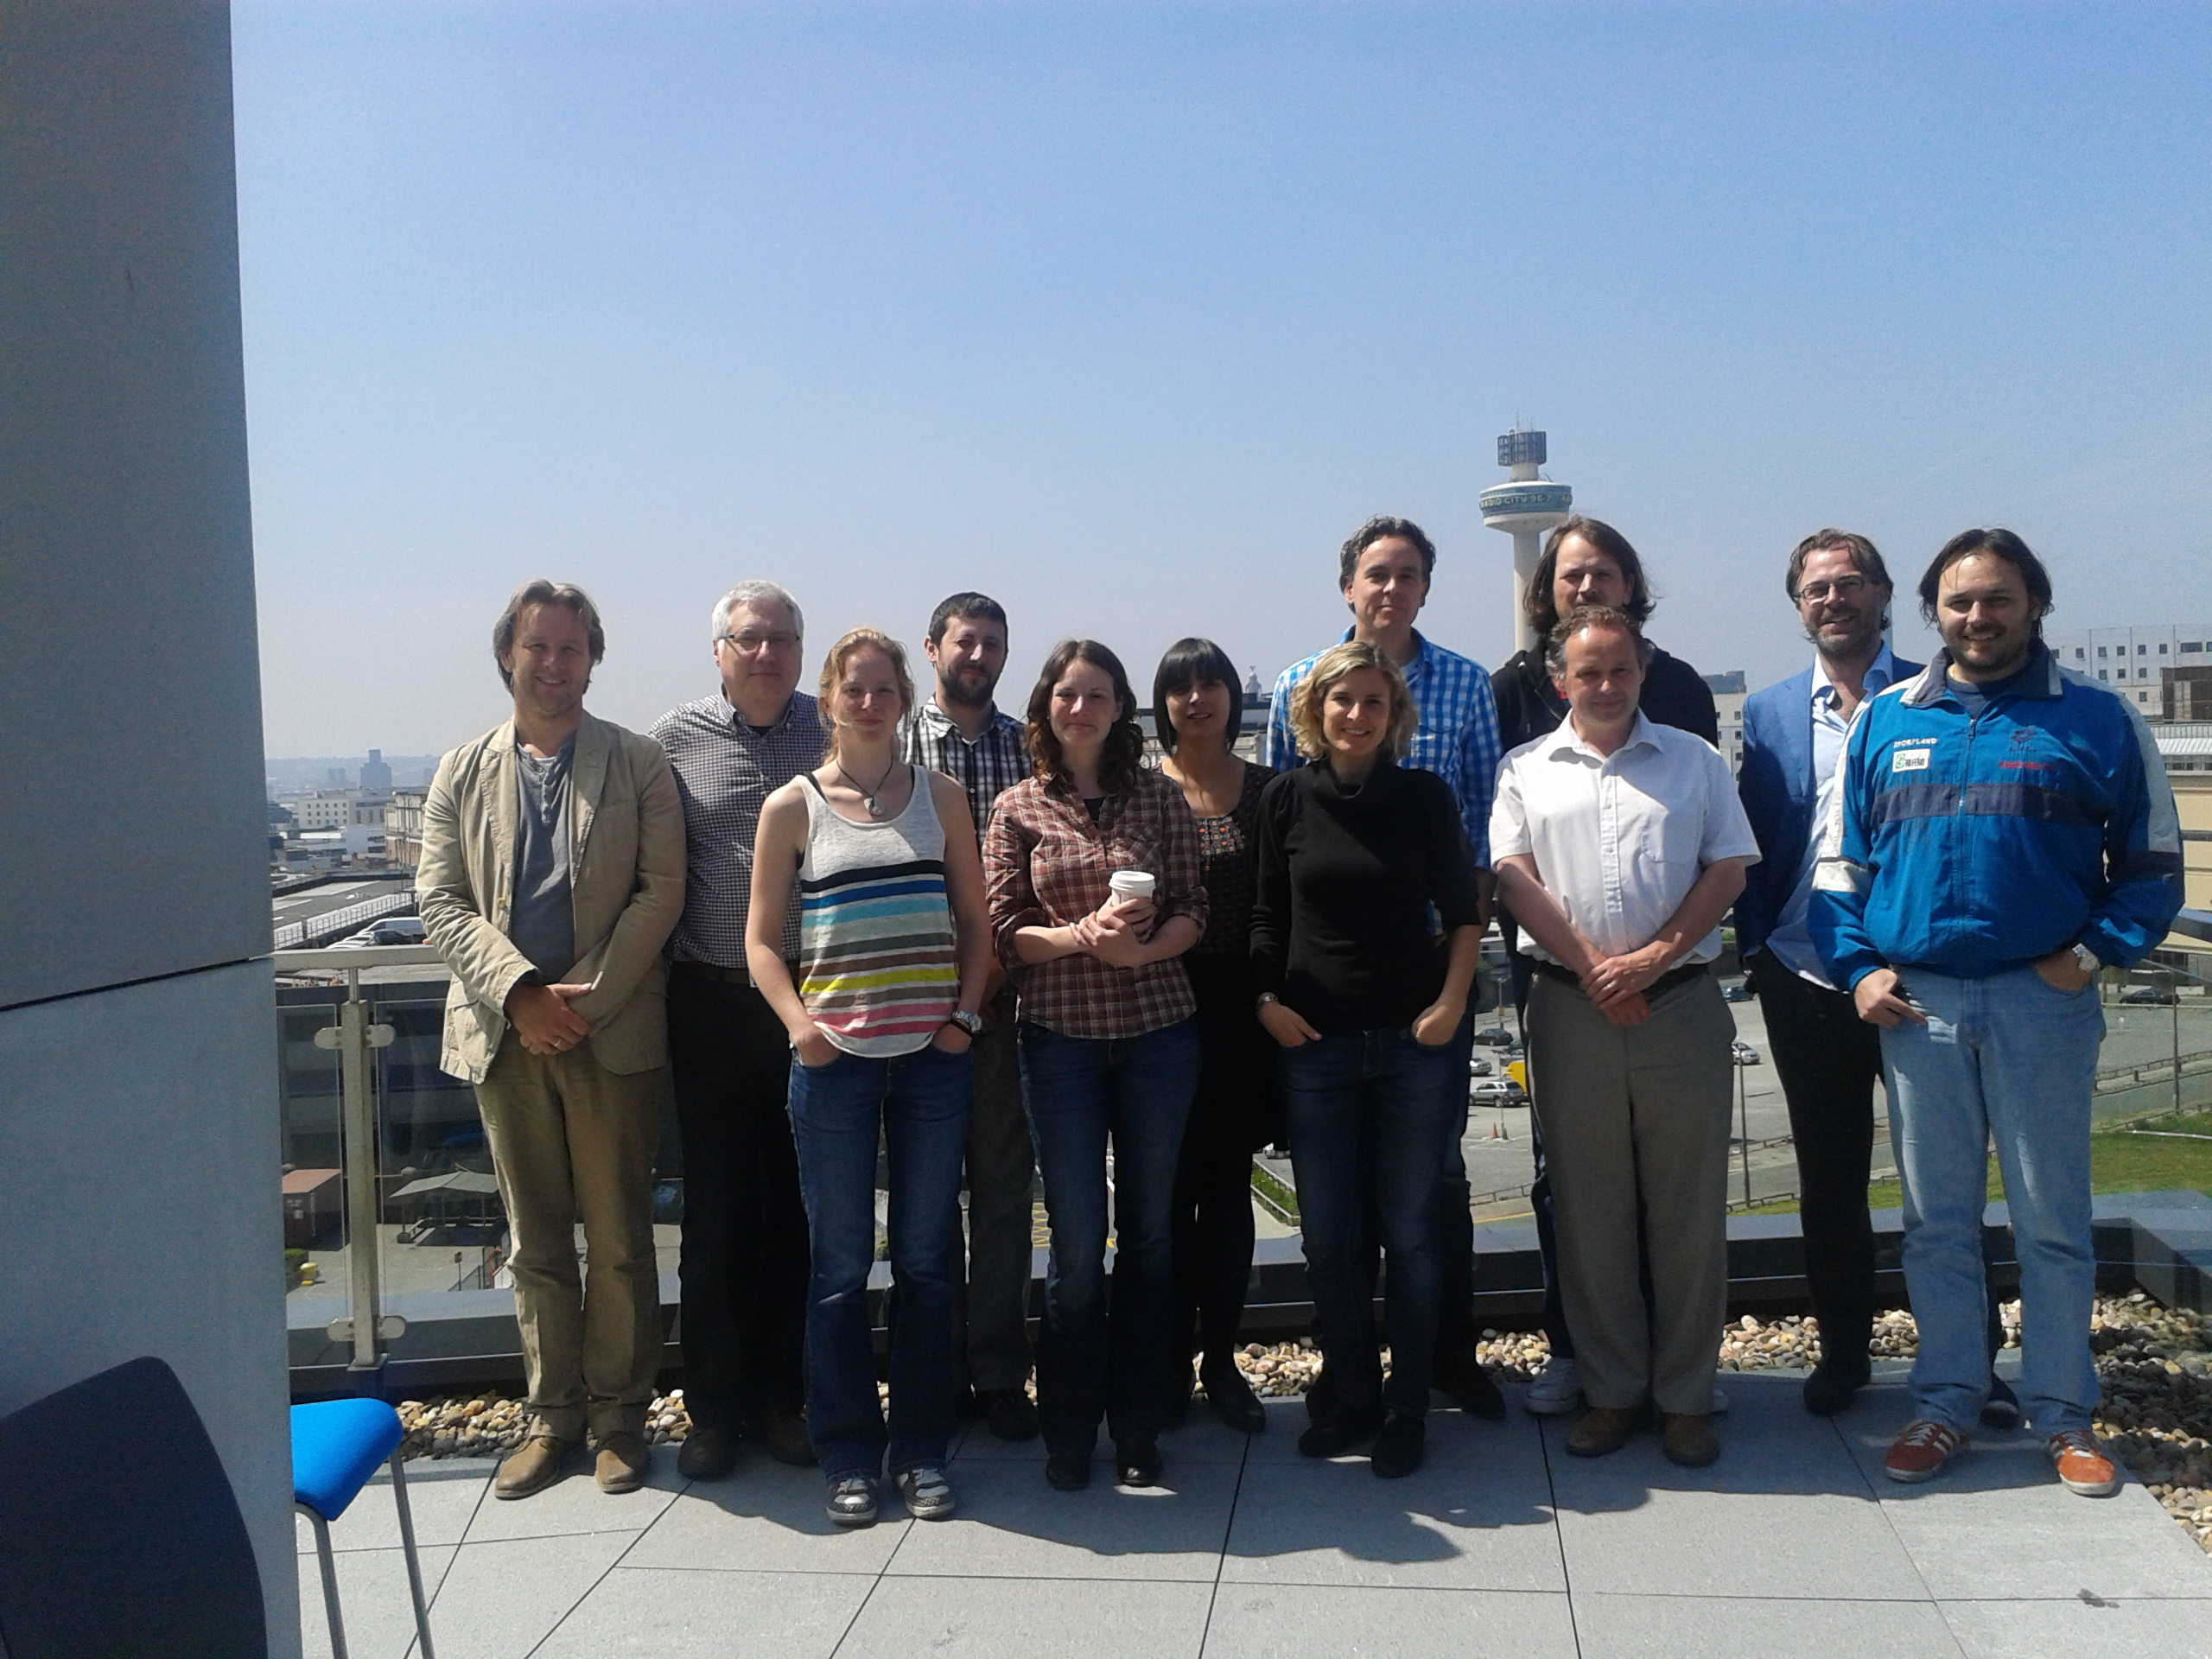 NewsReader FP7 Project Team Photo in Liverpool June 2013